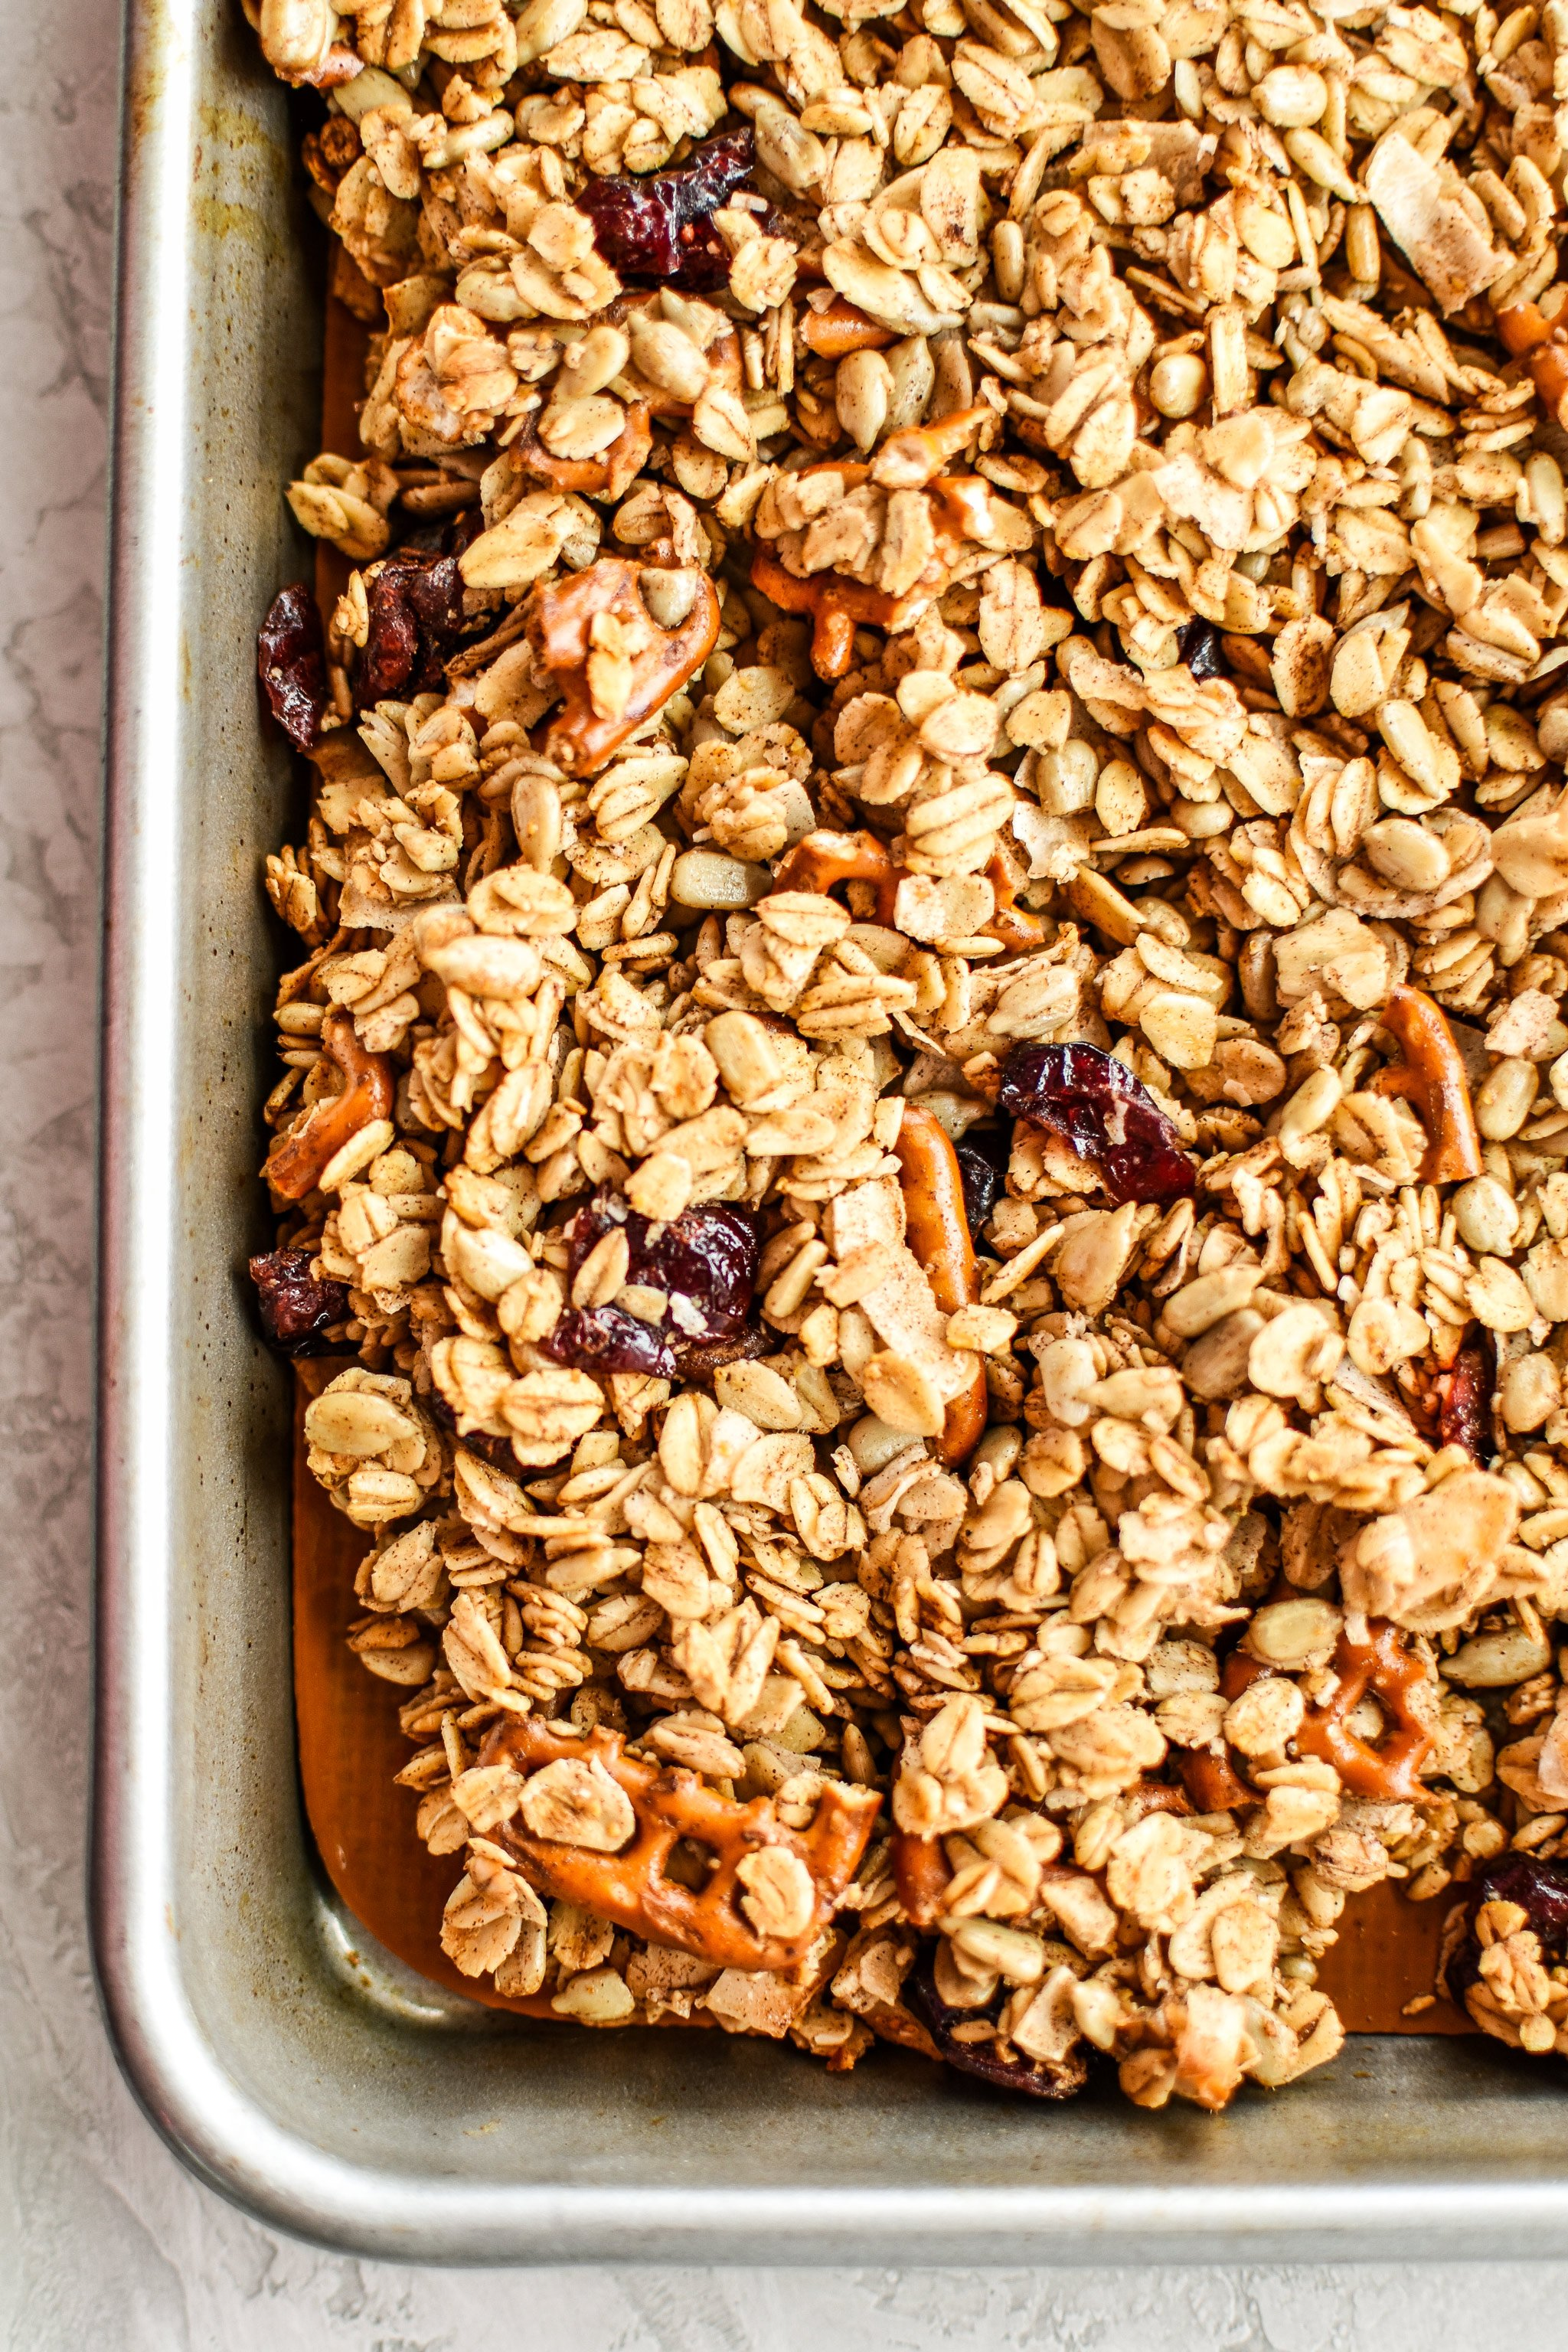 A sheet pan with cooked granola cooling.